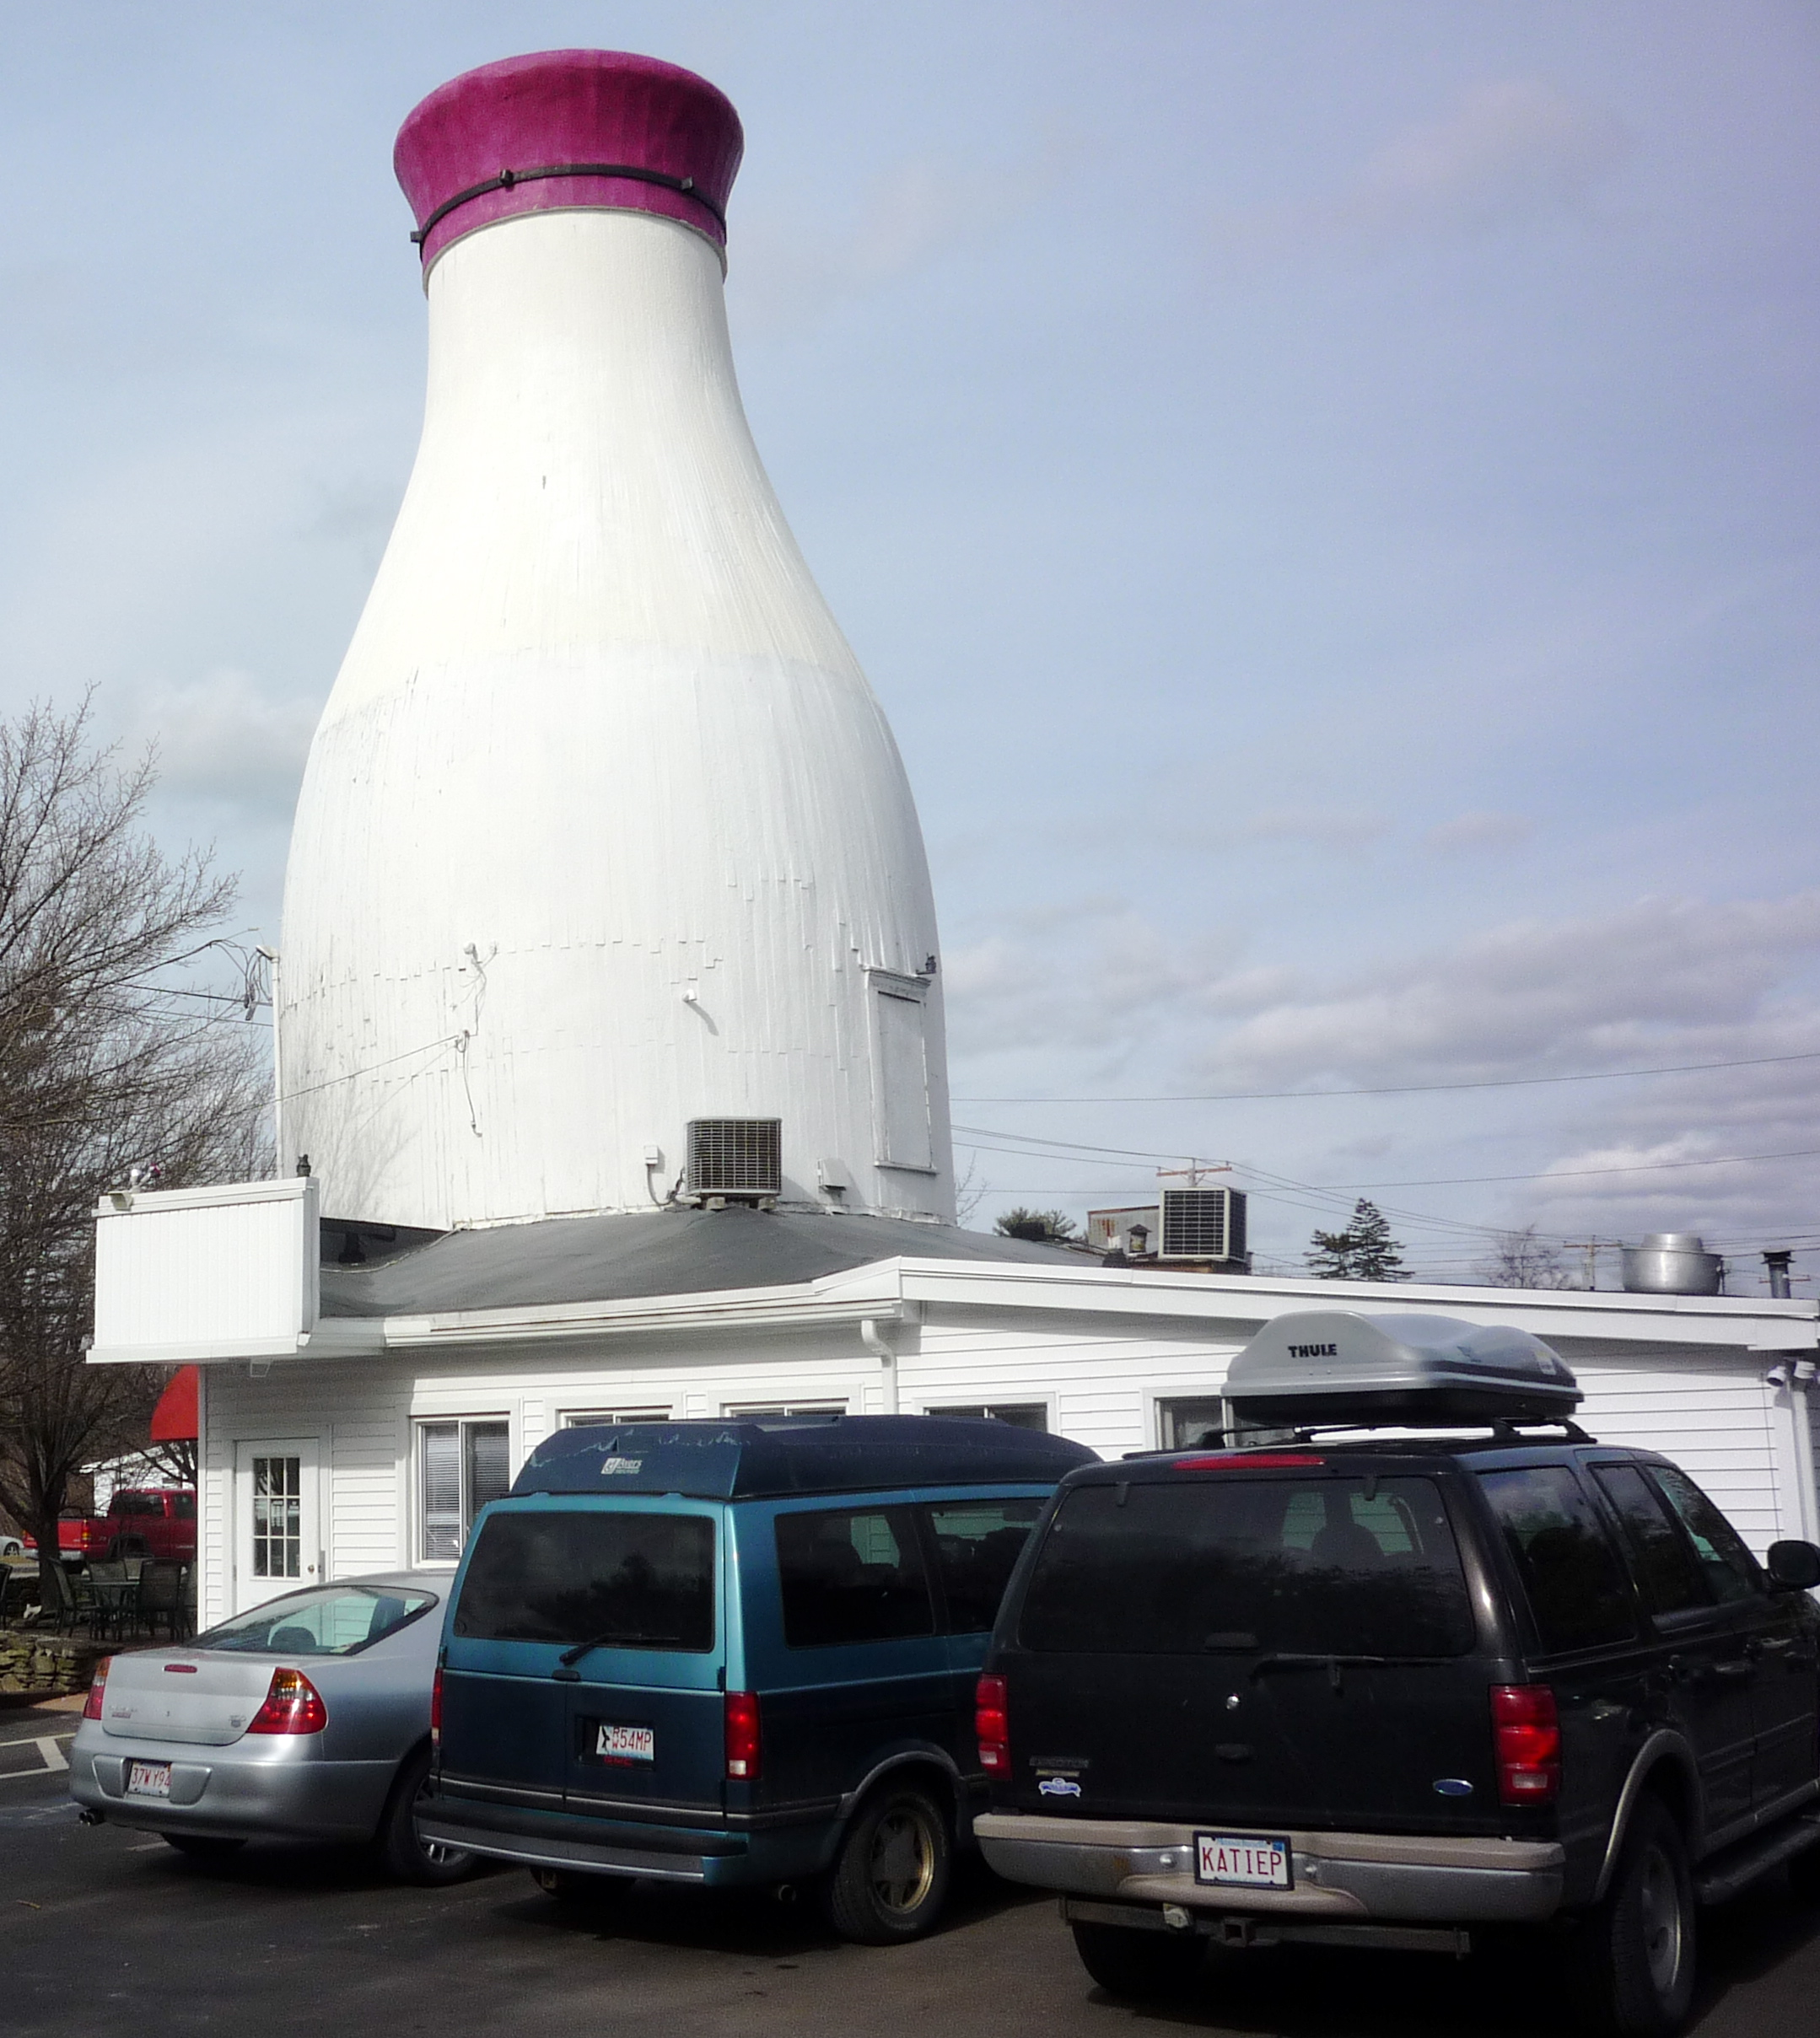 Milk Bottle Restaurant in Raynham, Mass., Features Unusual Look and Cheap Eats